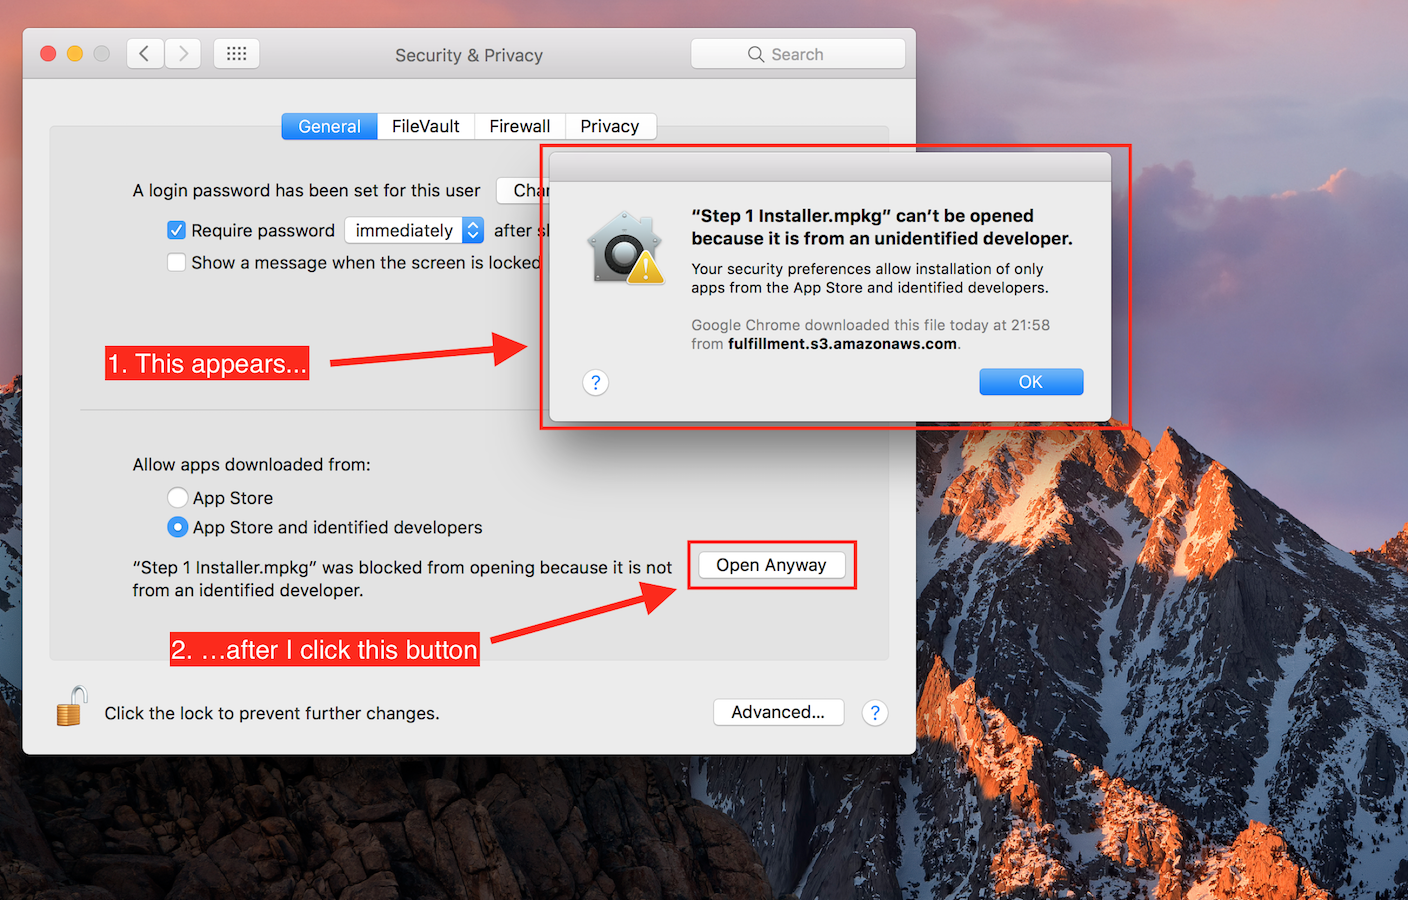 How to open a file from unidentified deve… - Apple Community